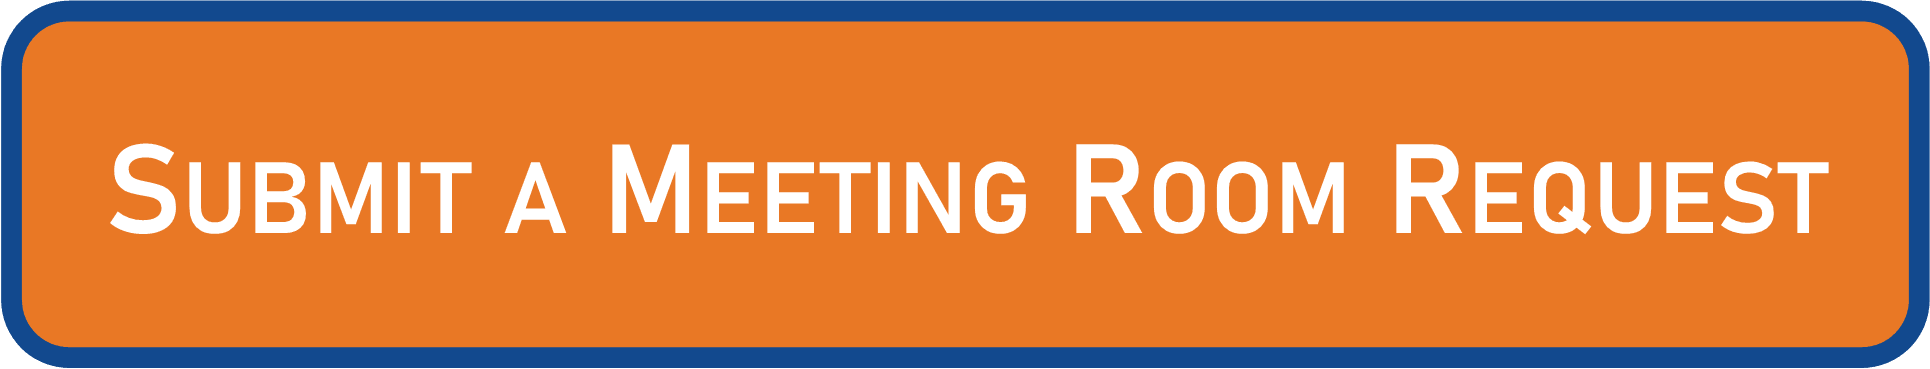 Click Here to Submit a Meeting Room Request!